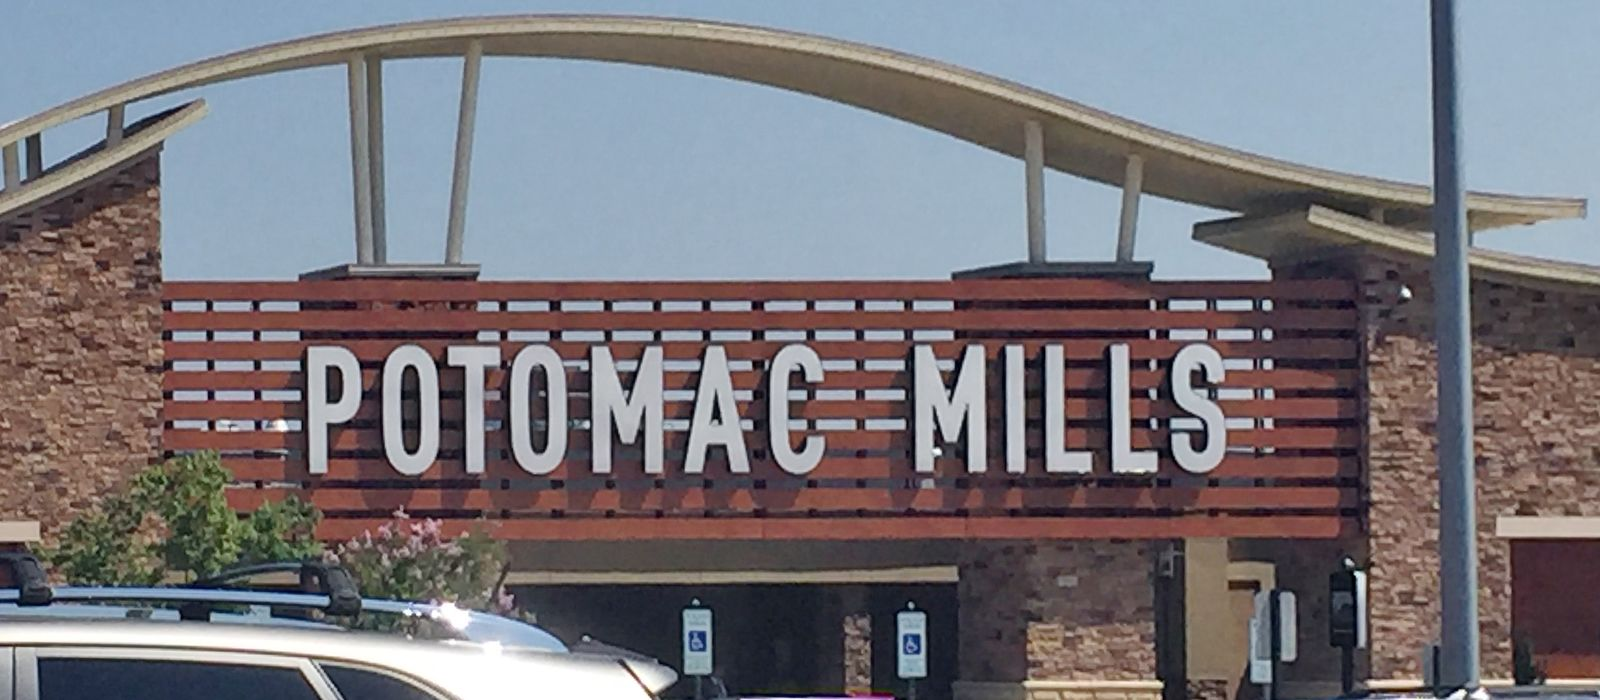 Potomac Mills is located in Woodbridge, Virginia and offers stores - Scroll down for Potomac Mills outlet shopping information: store list, locations, outlet mall hours, contact and address.3/5(15).